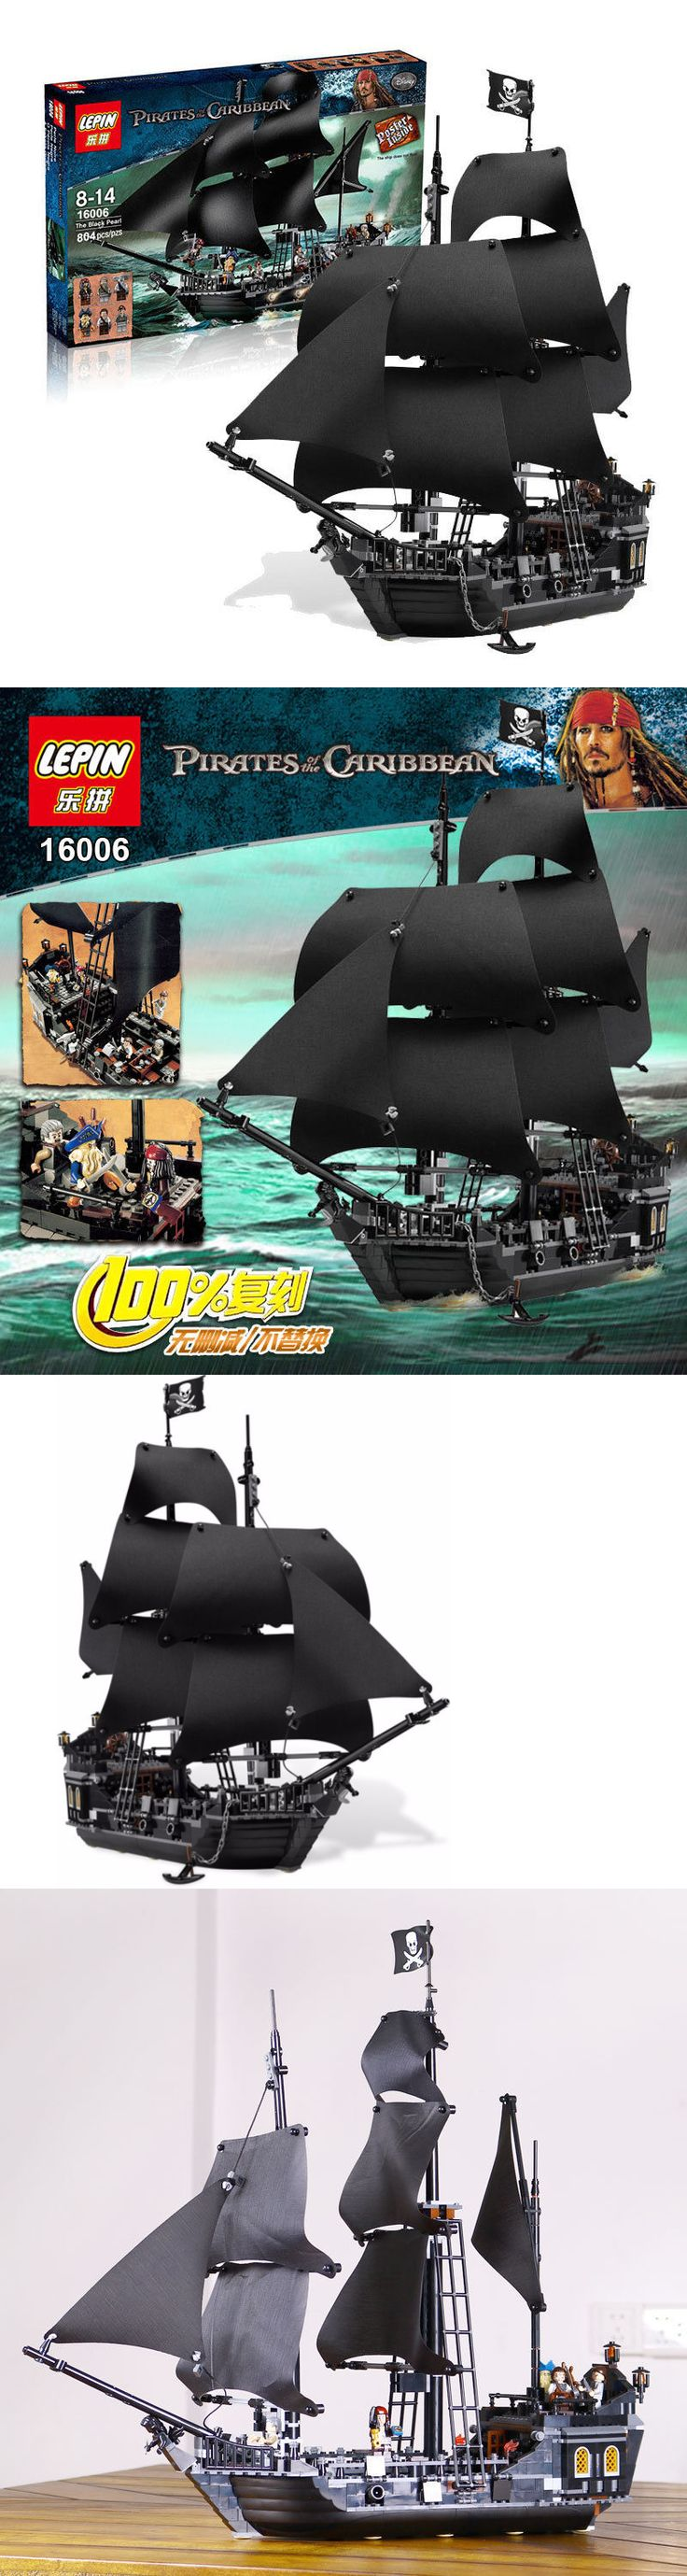 Blocks 18992: The Black Pearl Ship 809Pcs Pirates Of The Caribbean 4184 Lego Compatible 16006 -> BUY IT NOW ONLY: $59.99 on eBay!